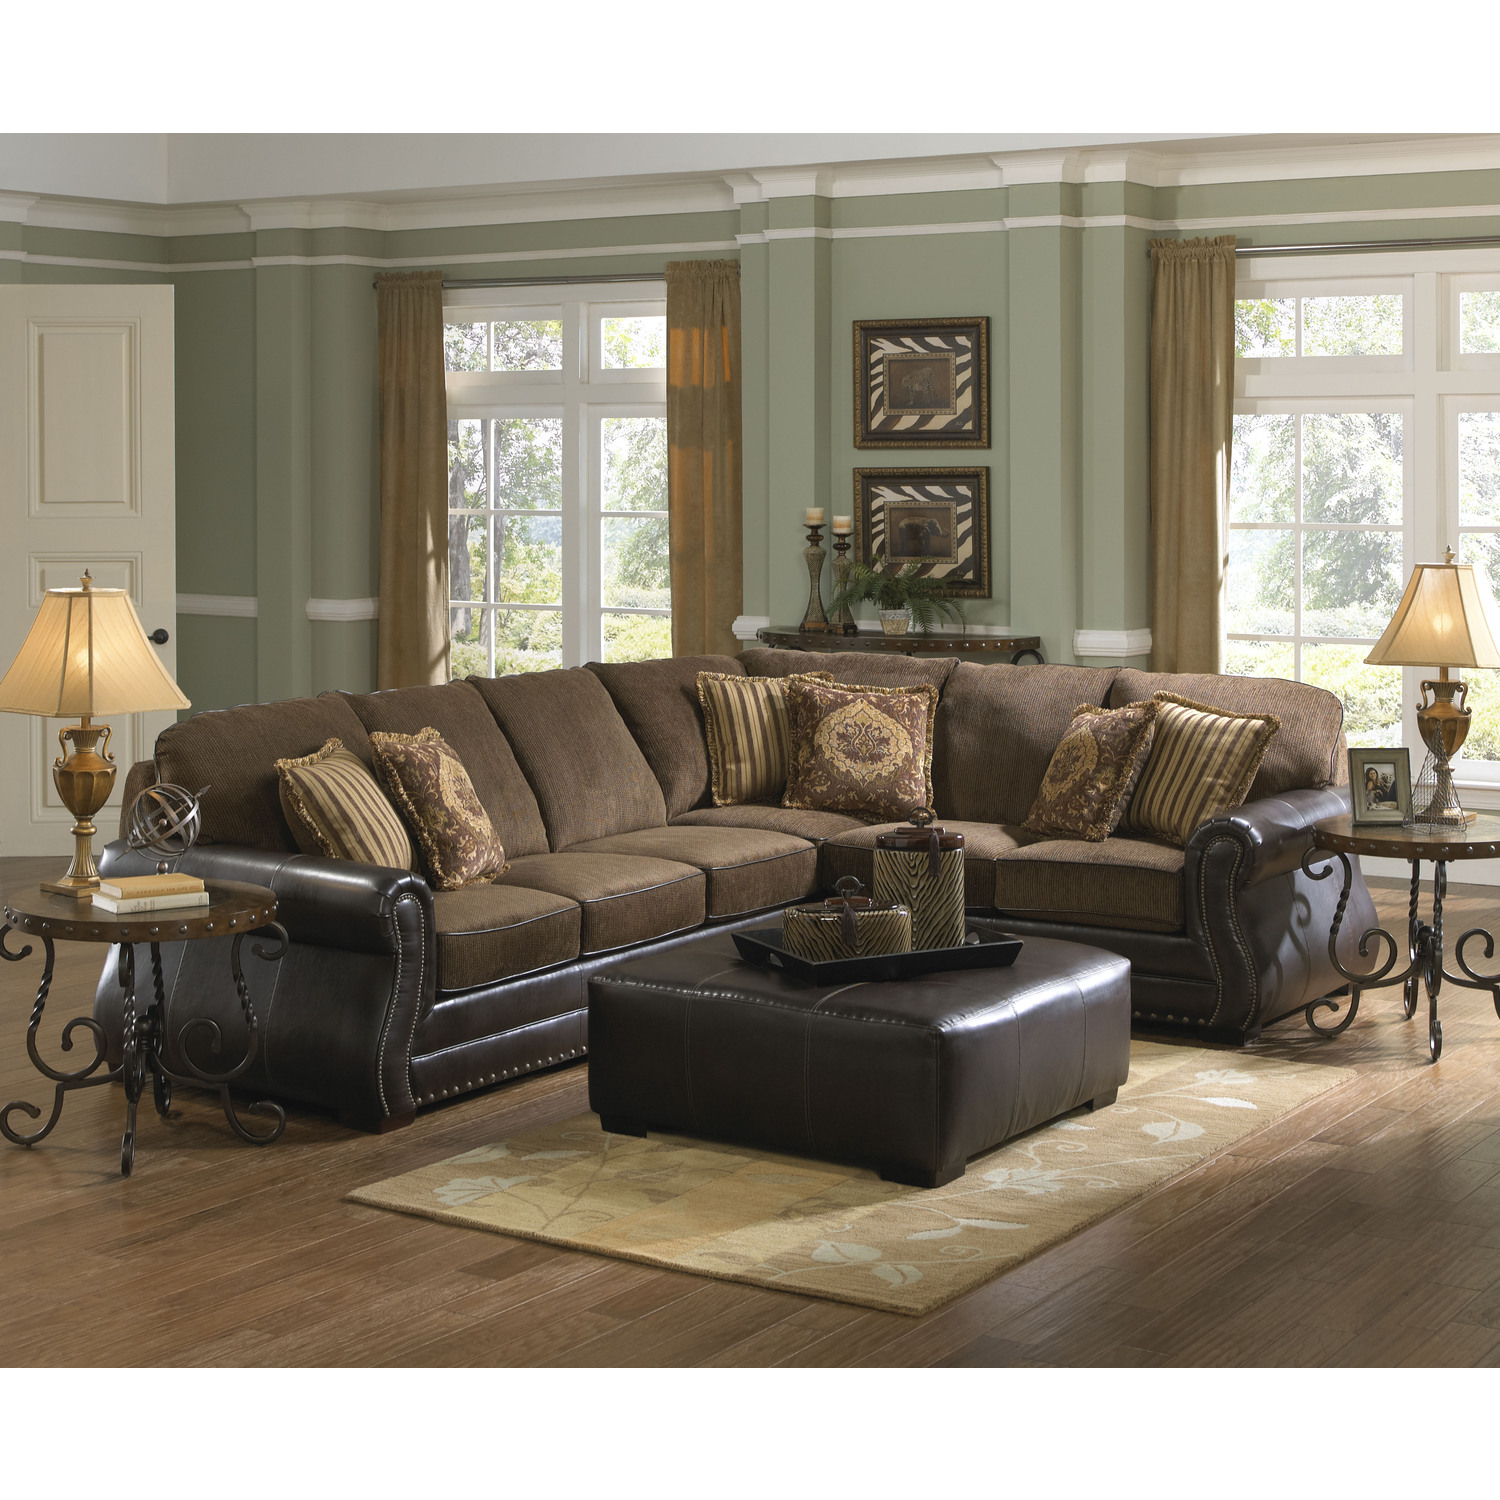 Jackson Furniture Austin Sectional by OJ Commerce 3202-62-72-1226